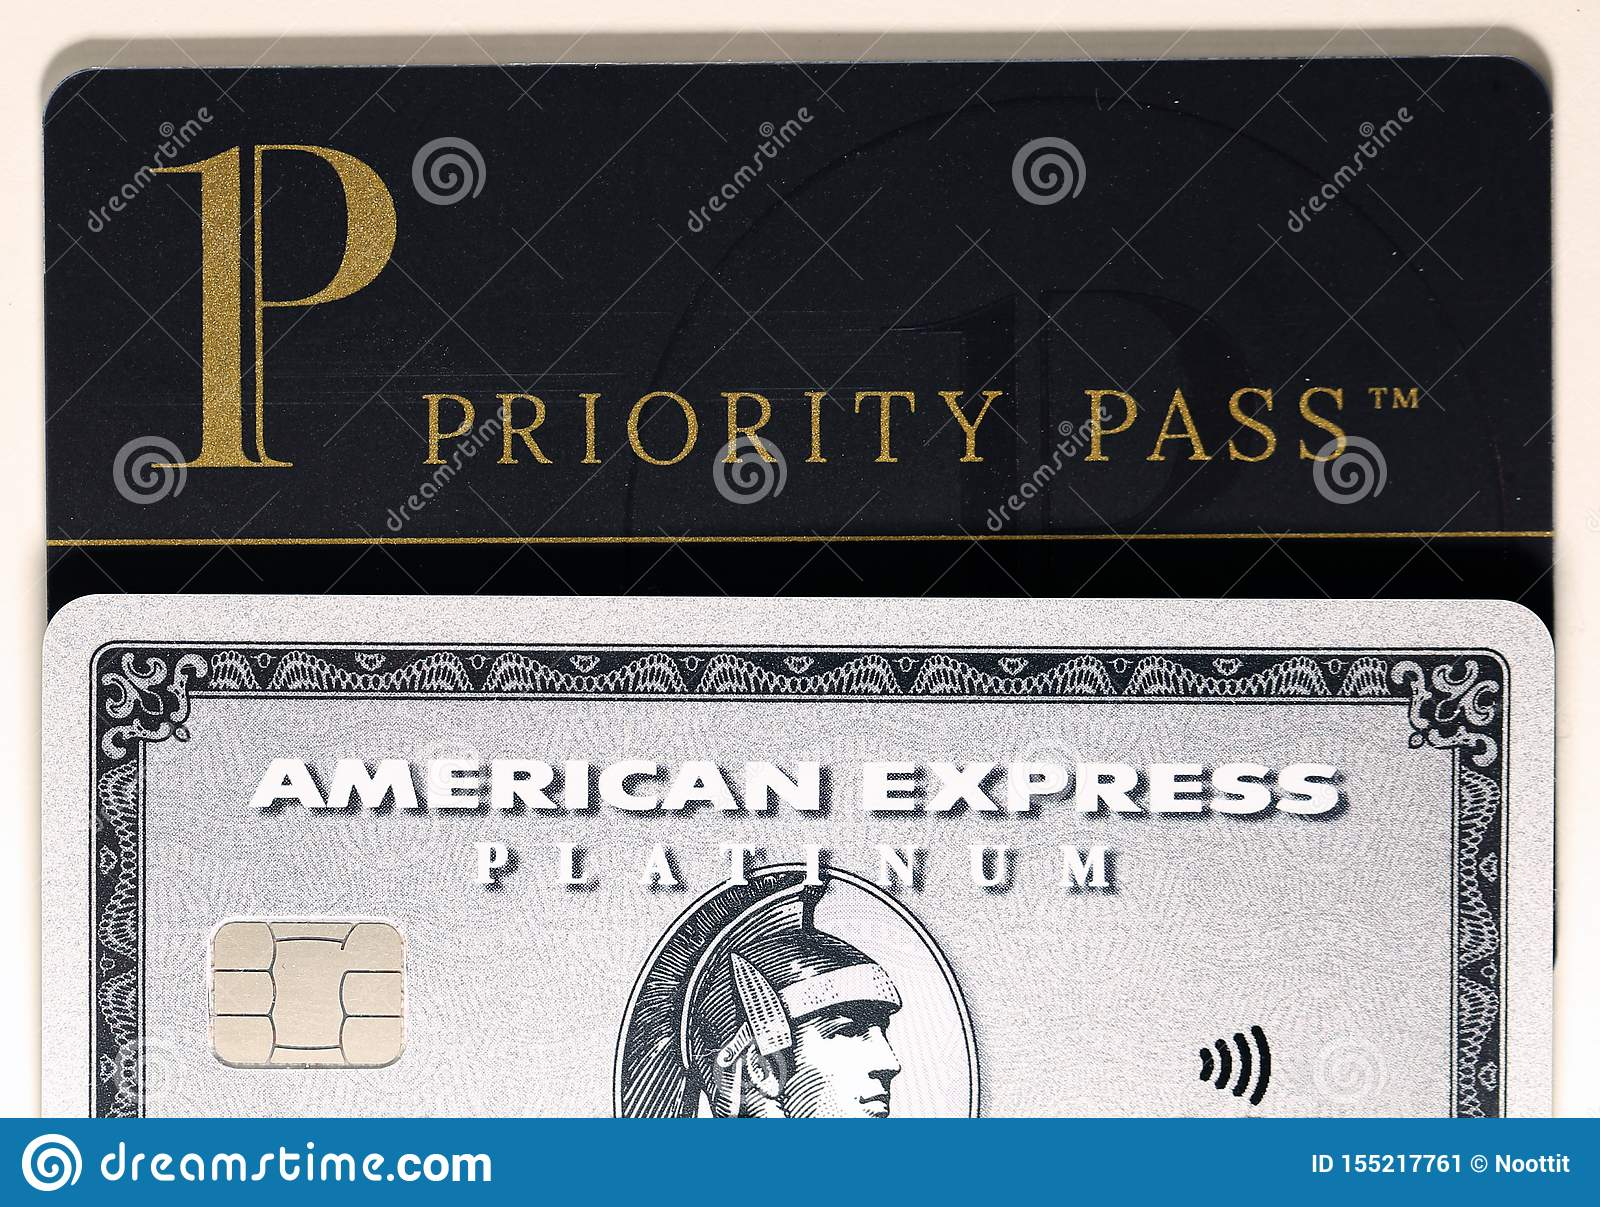 American Express Amex Platinum & Priority Pass Card On A White